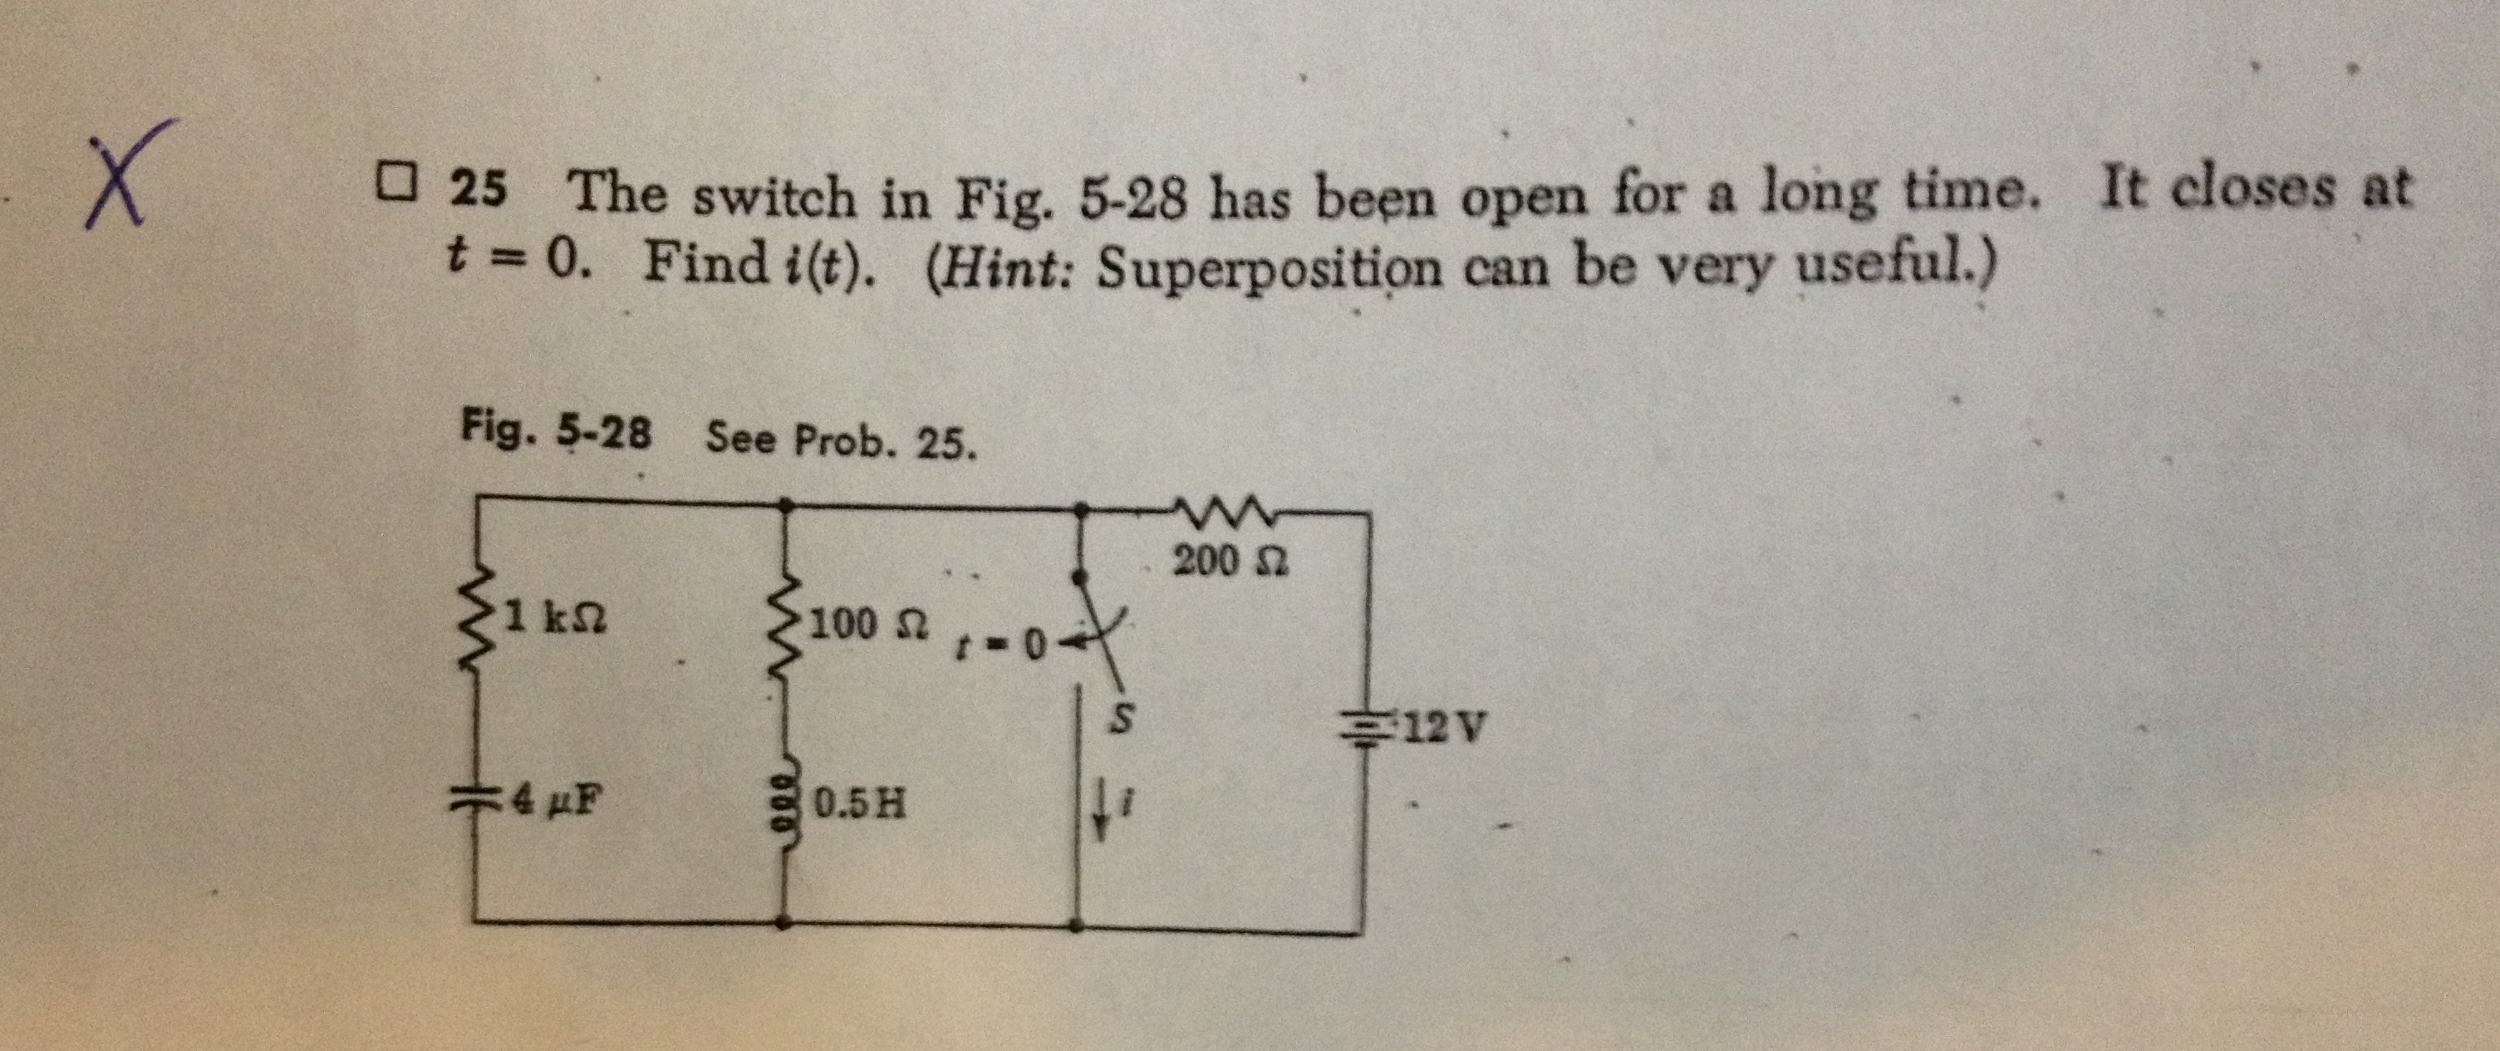 The switch in Fig. 5-28 has been open for a long t